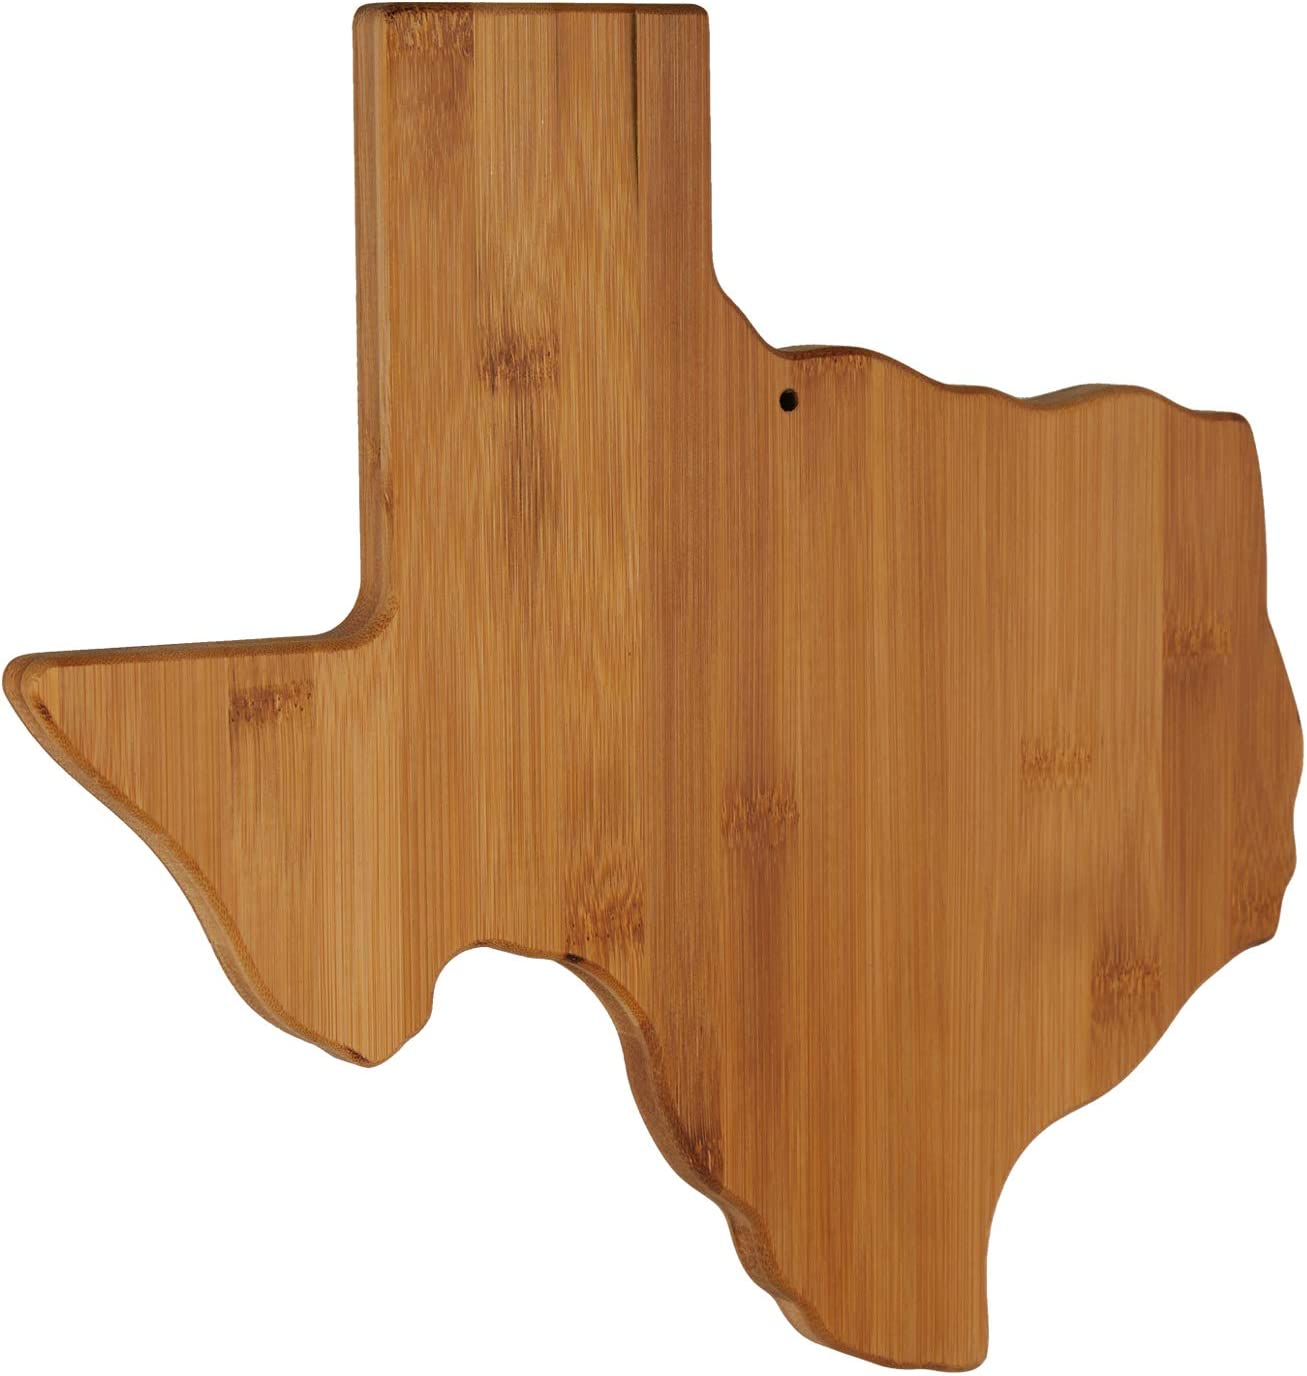 Texas state shaped bamboo shaped cutting board. Click through to find Humor, Gifts for Mamas and Grads + Books to Keep You Company!